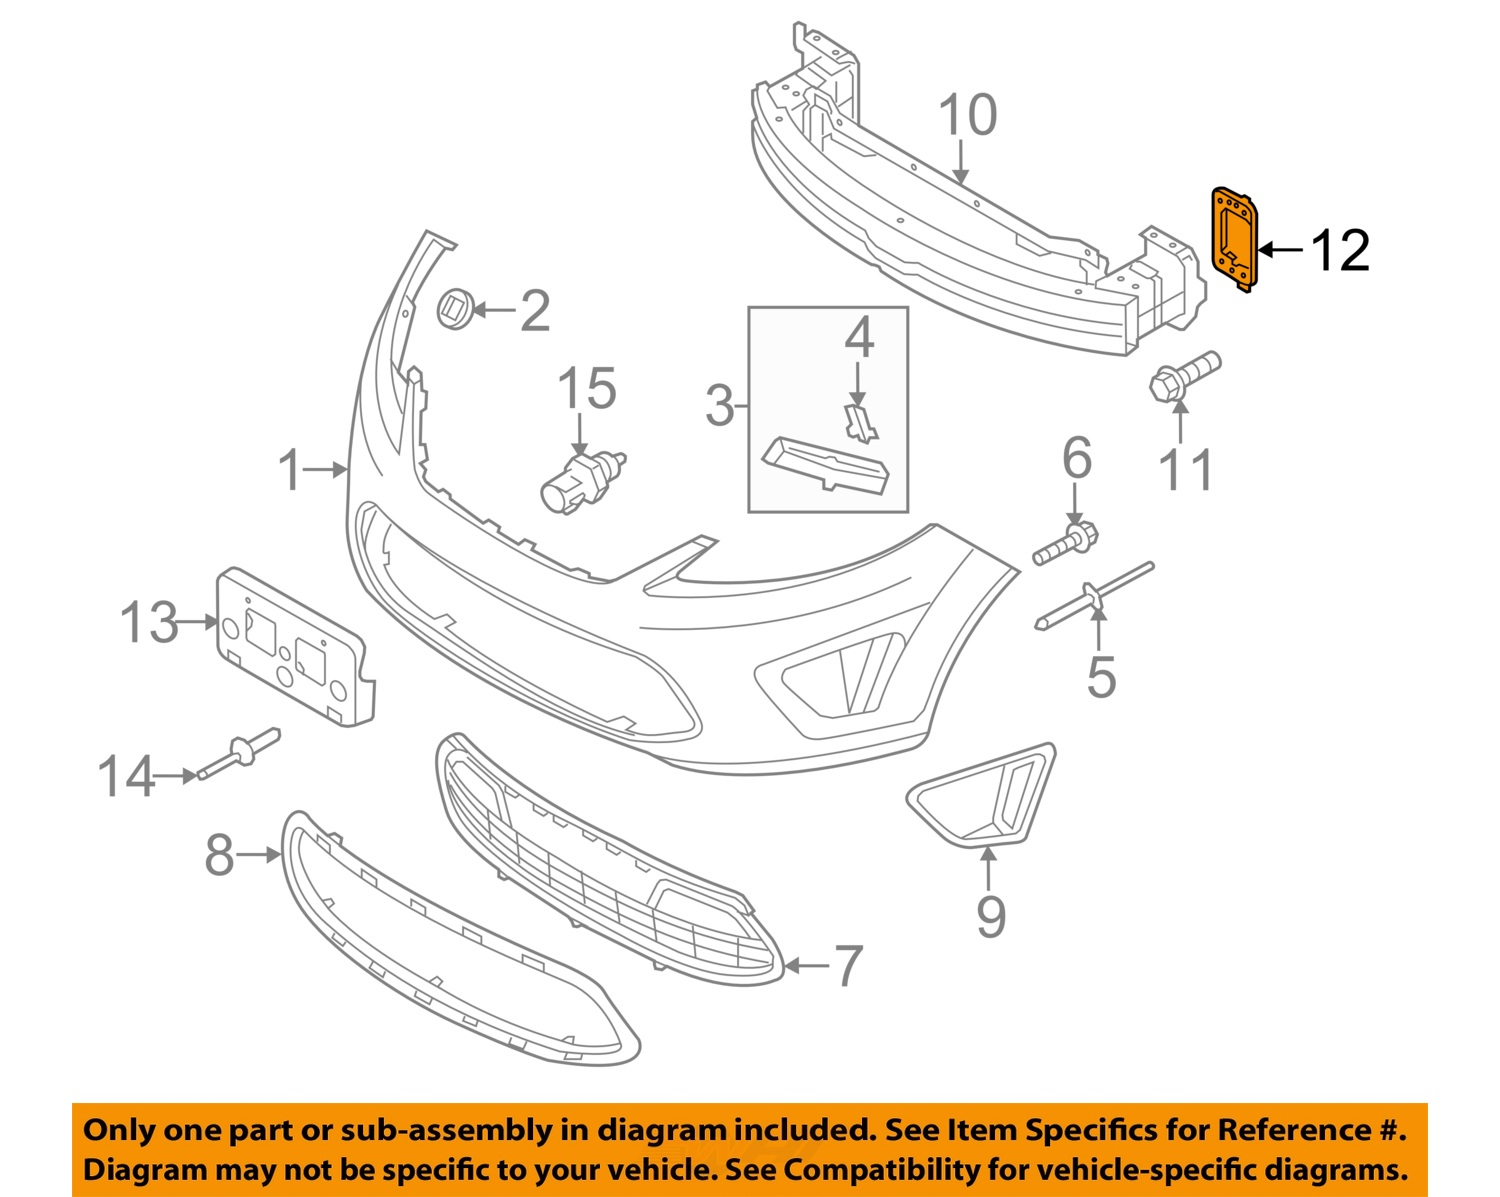 ford e series front bumper diagram ford e series engine diagram ford oem 11-13 fiesta front bumper-mount bracket left ...